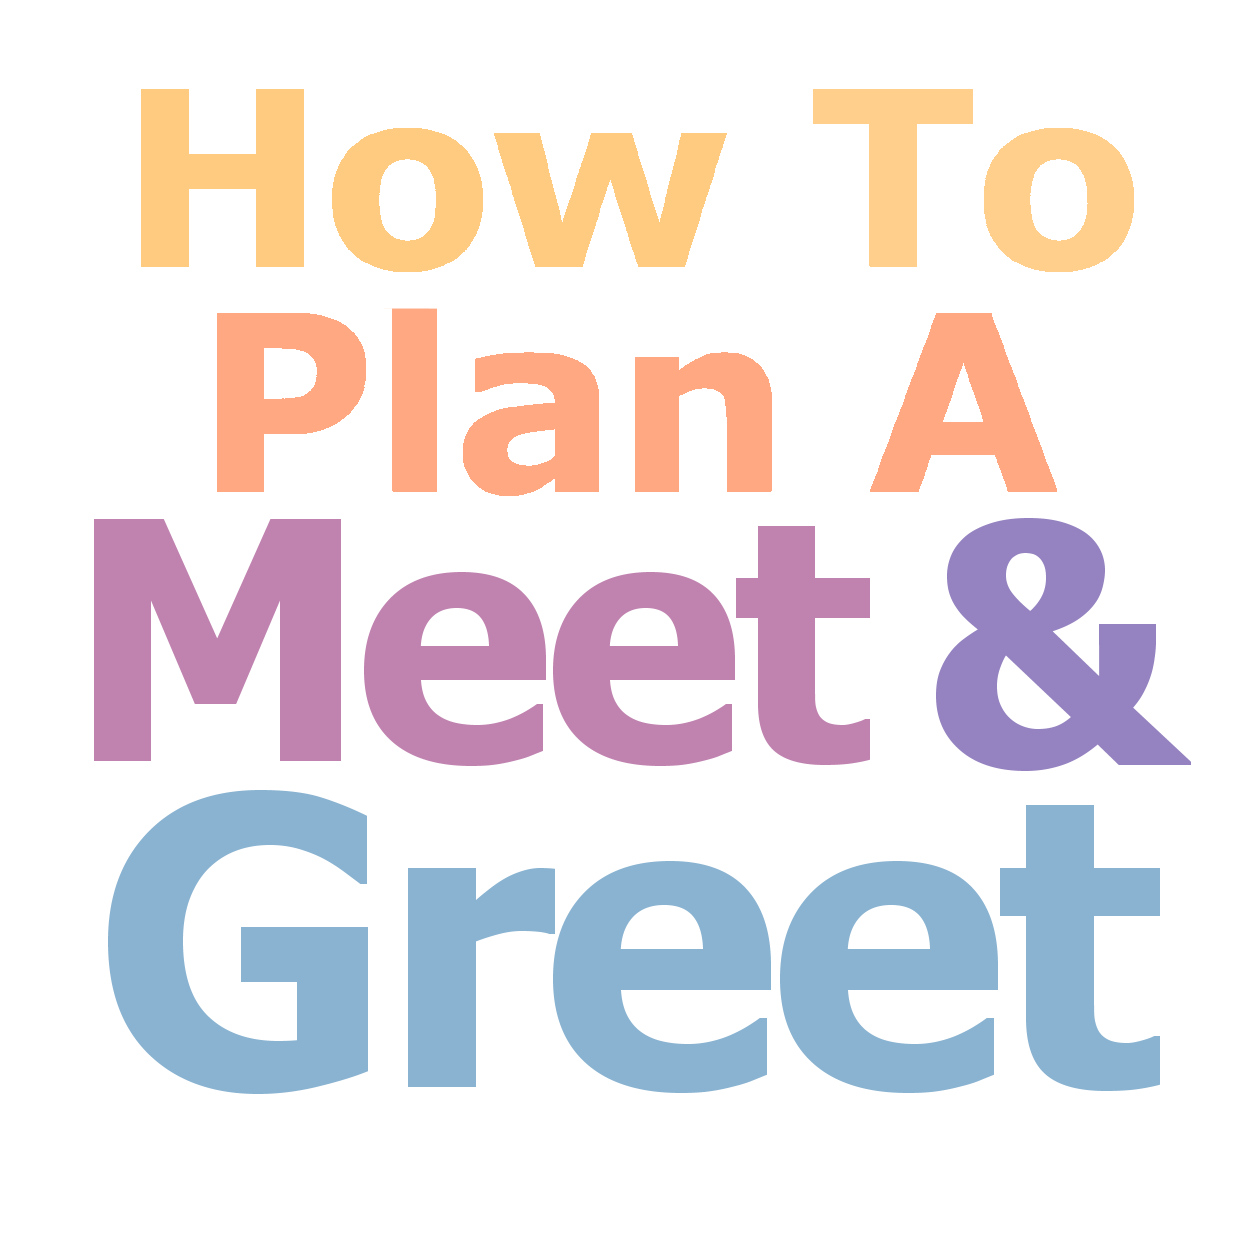 Family reunion planning guides apps and books how to plan a meet a great way to kickoff the festivities held the first day of the reunion event is by arranging a meet and greet the purpose of the meet and greet is to m4hsunfo